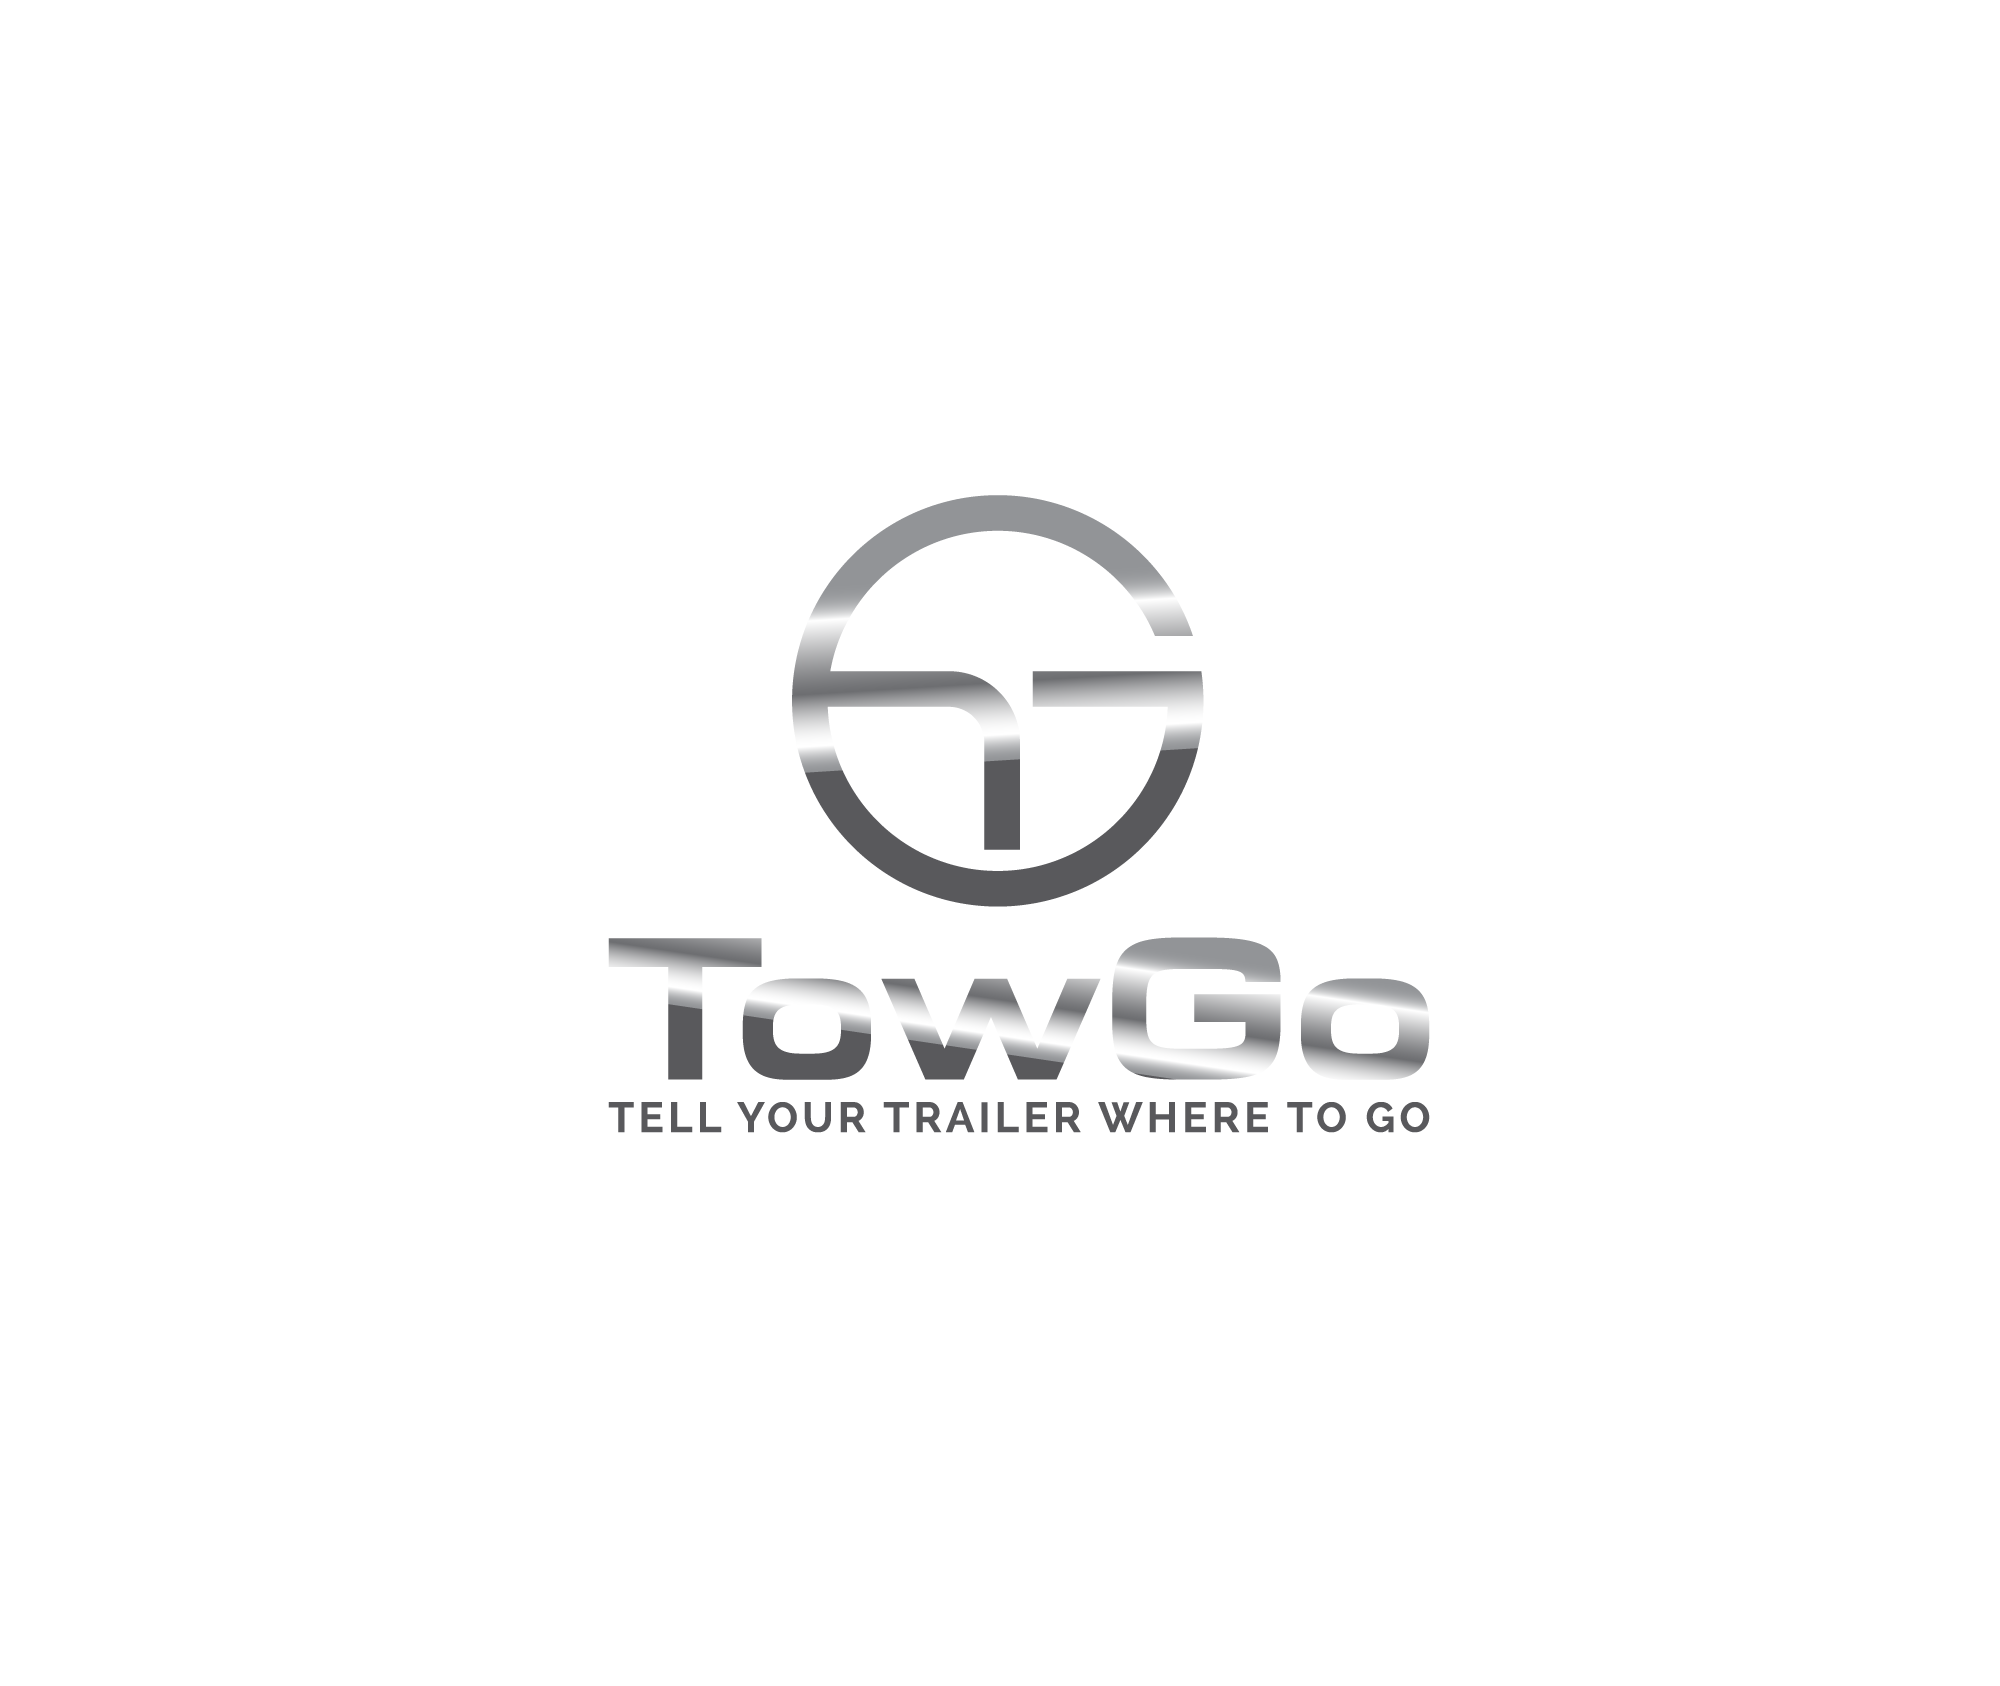 TowGo - Backing Aid for Trailering